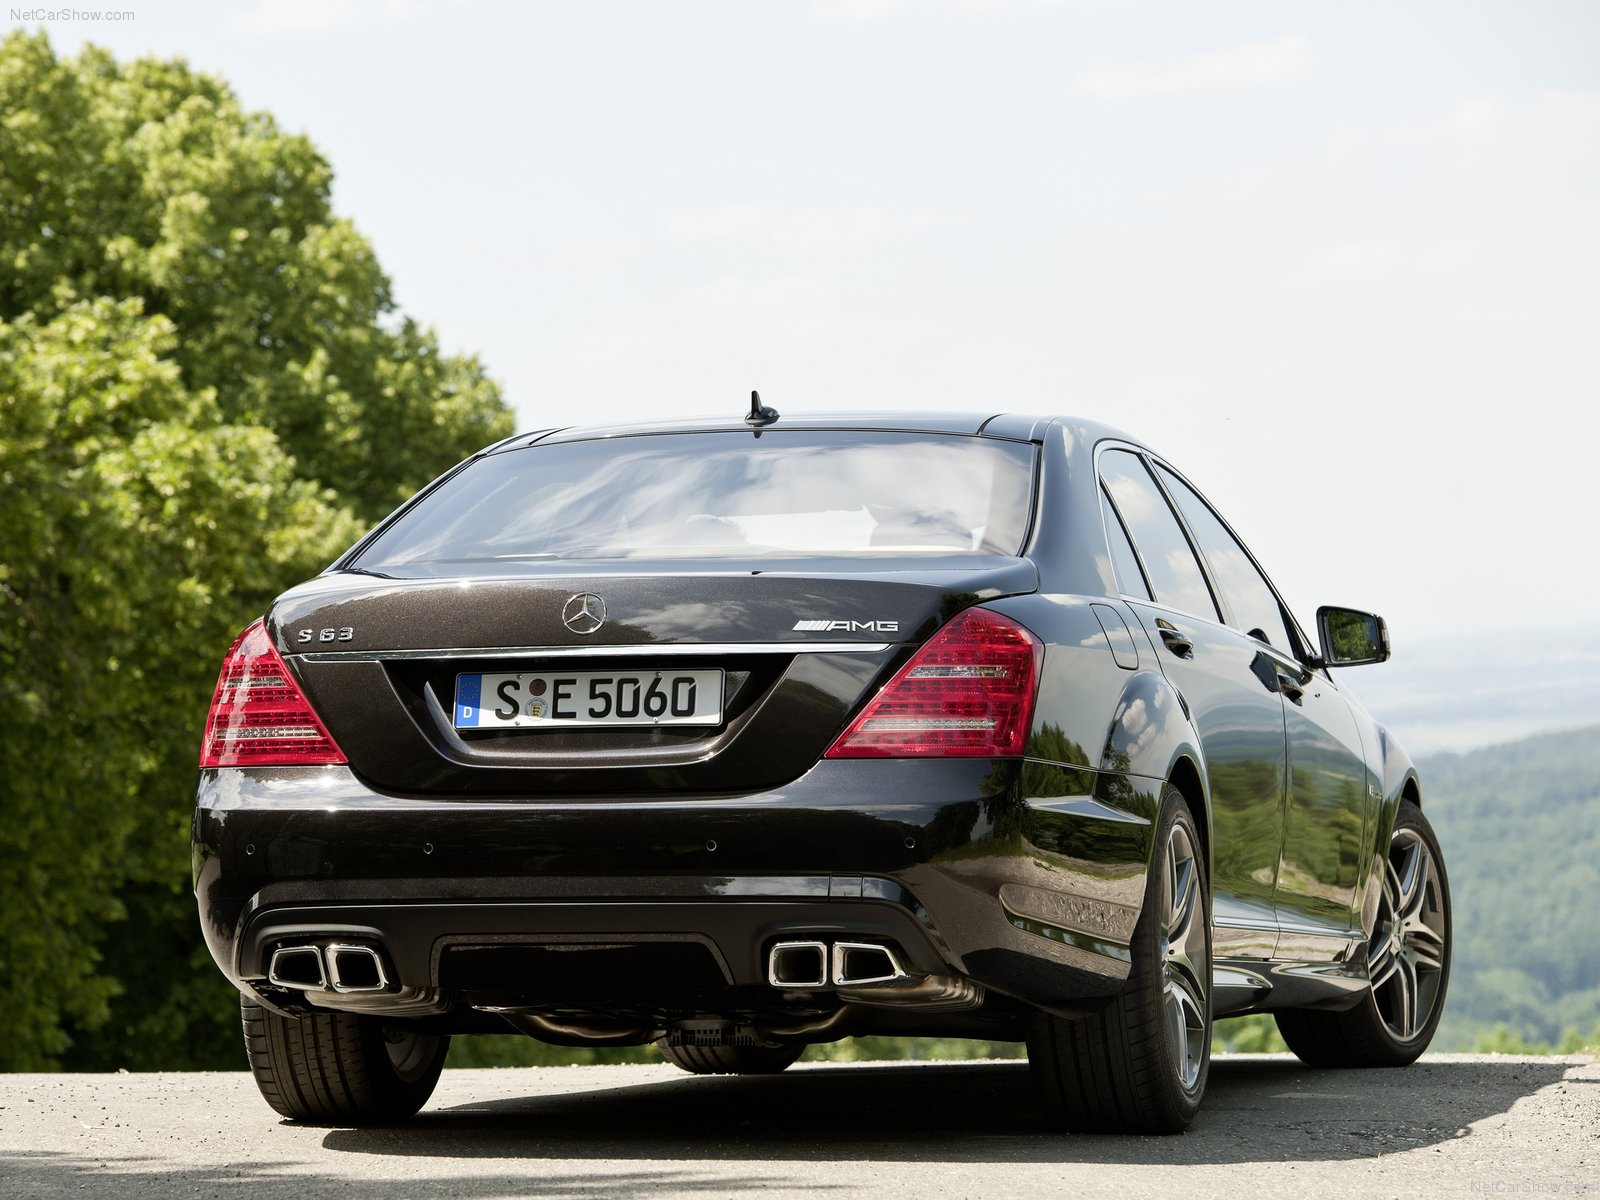 Mercedes Benz S63 AMG picture